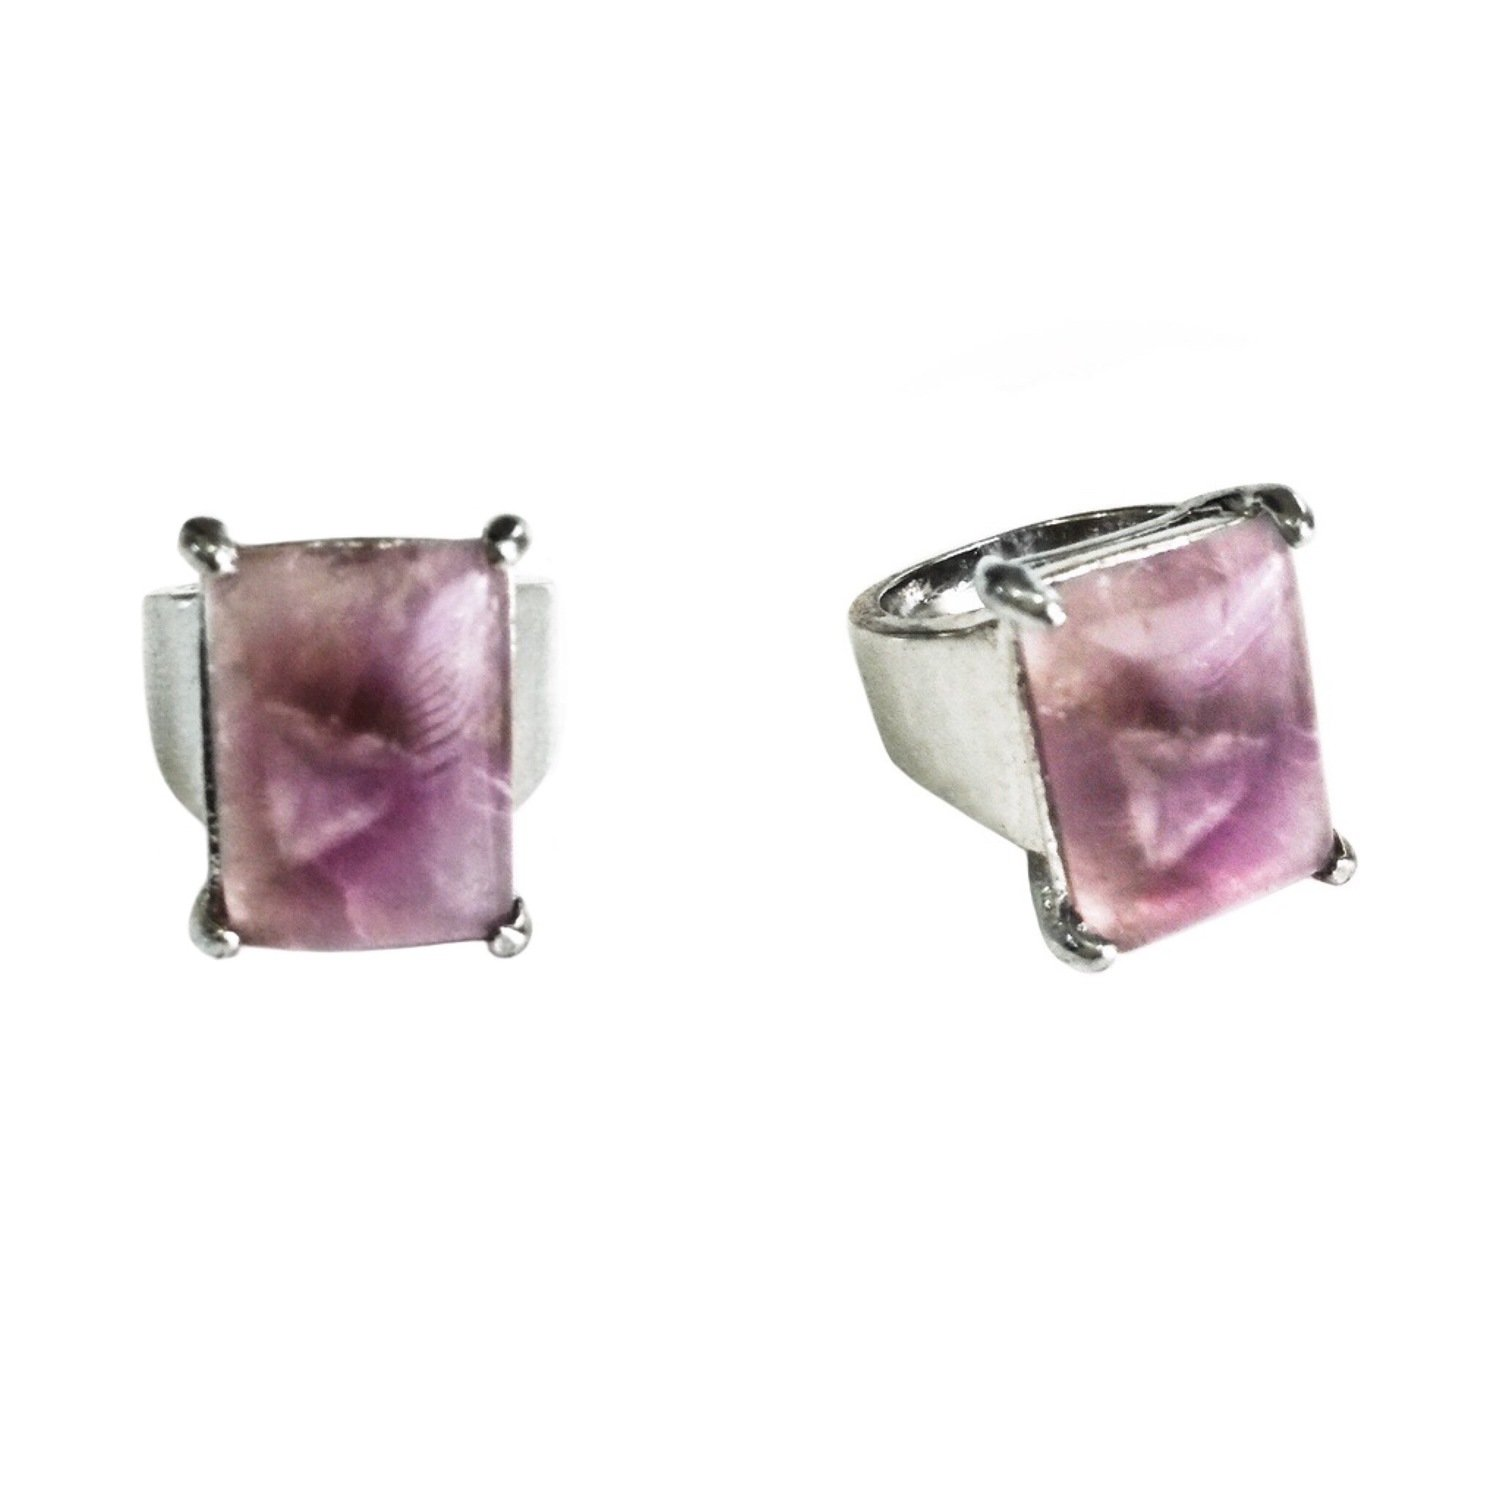 Semi-precious Amethyst Amulet Ring to prevent a Cloudy Mind by eradicating Negative Thoughts and Feelings